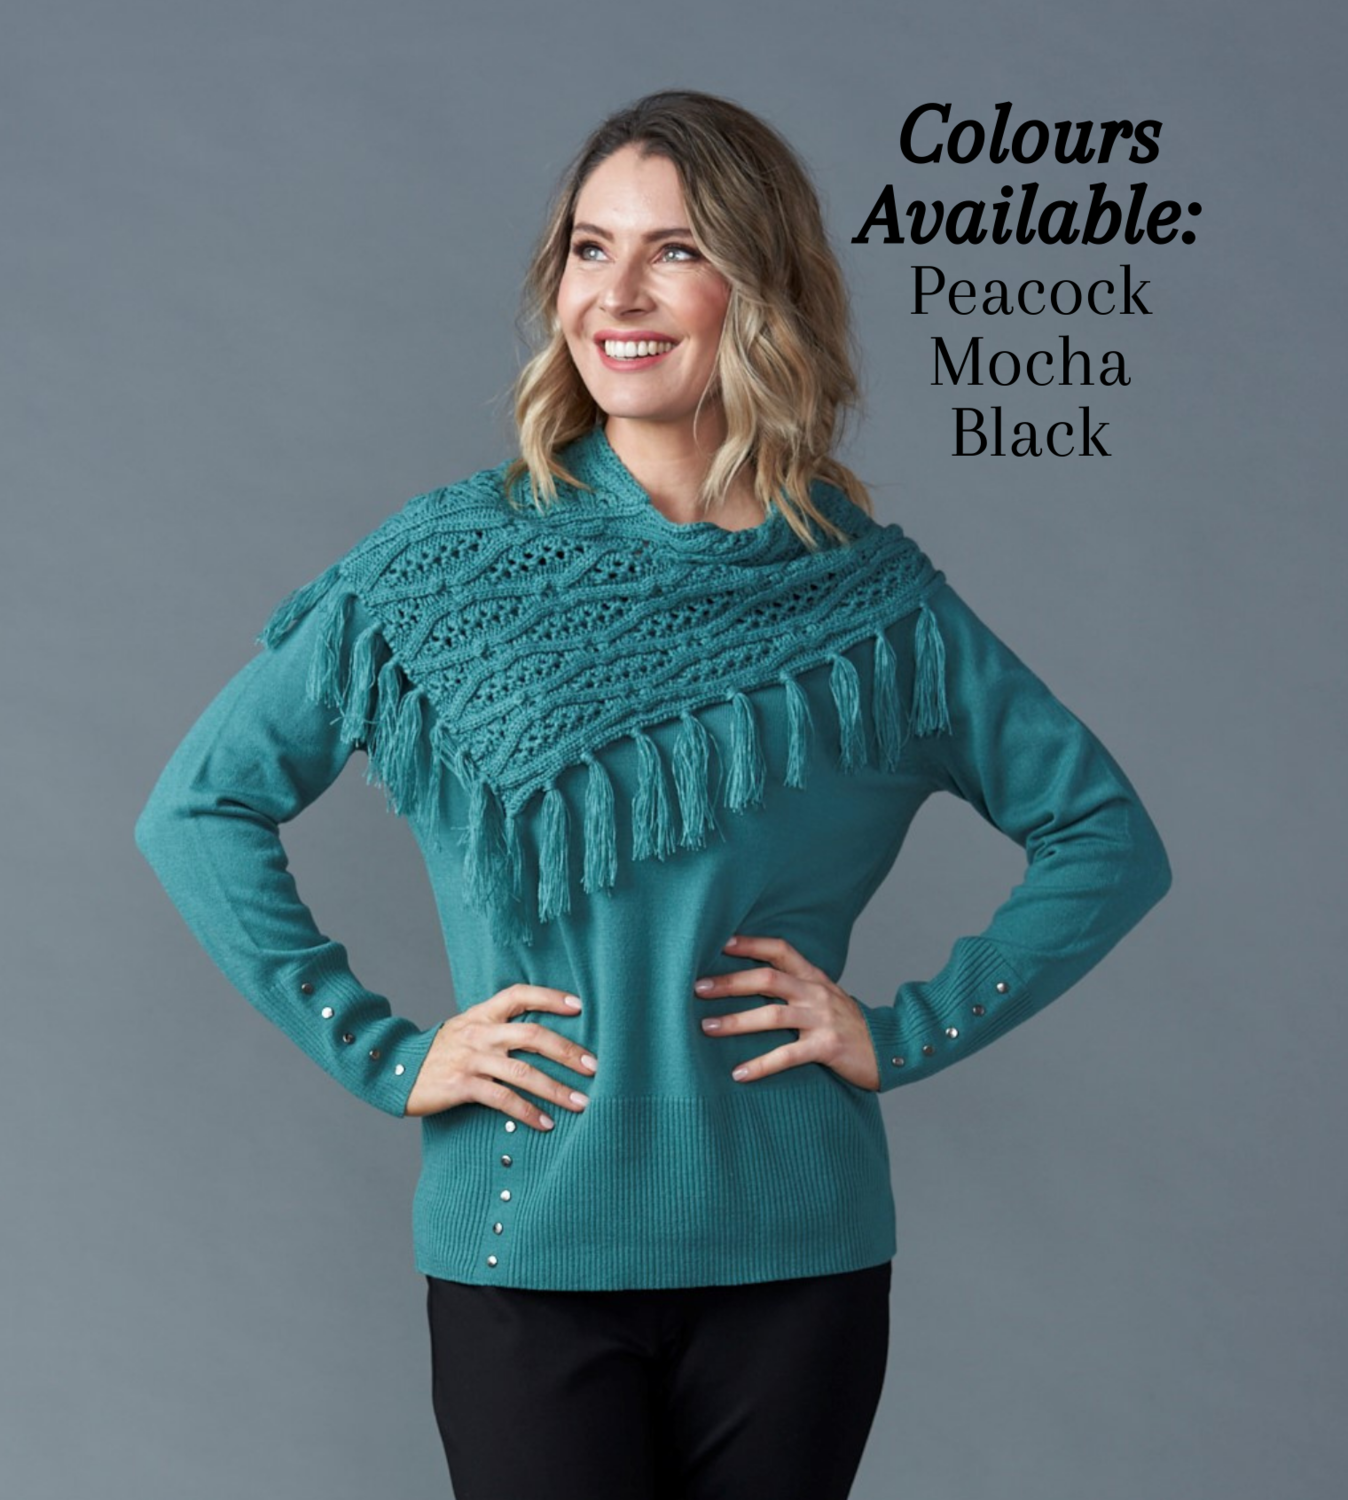 Jersey with Separate Snood - 3 Colours Available